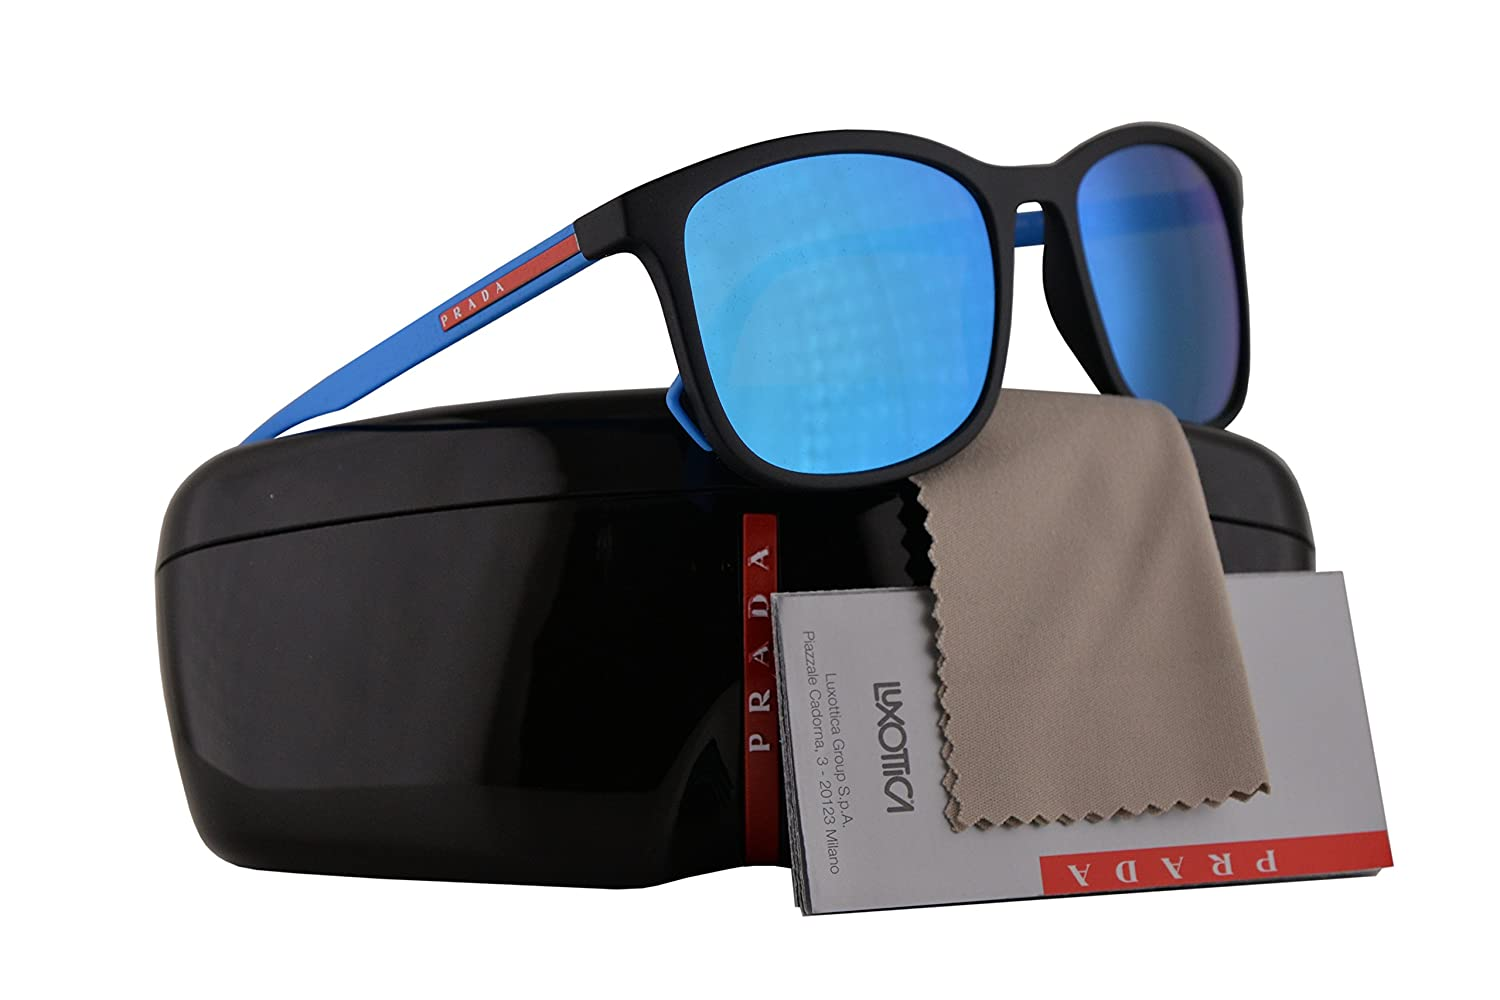 c338ad87c58a Prada PS01TS Sunglasses Black Rubber w/Light Green Mirror Blue 56mm Lens  DG05M2 SPS01T PS 01TS SPS 01T: Amazon.co.uk: Clothing